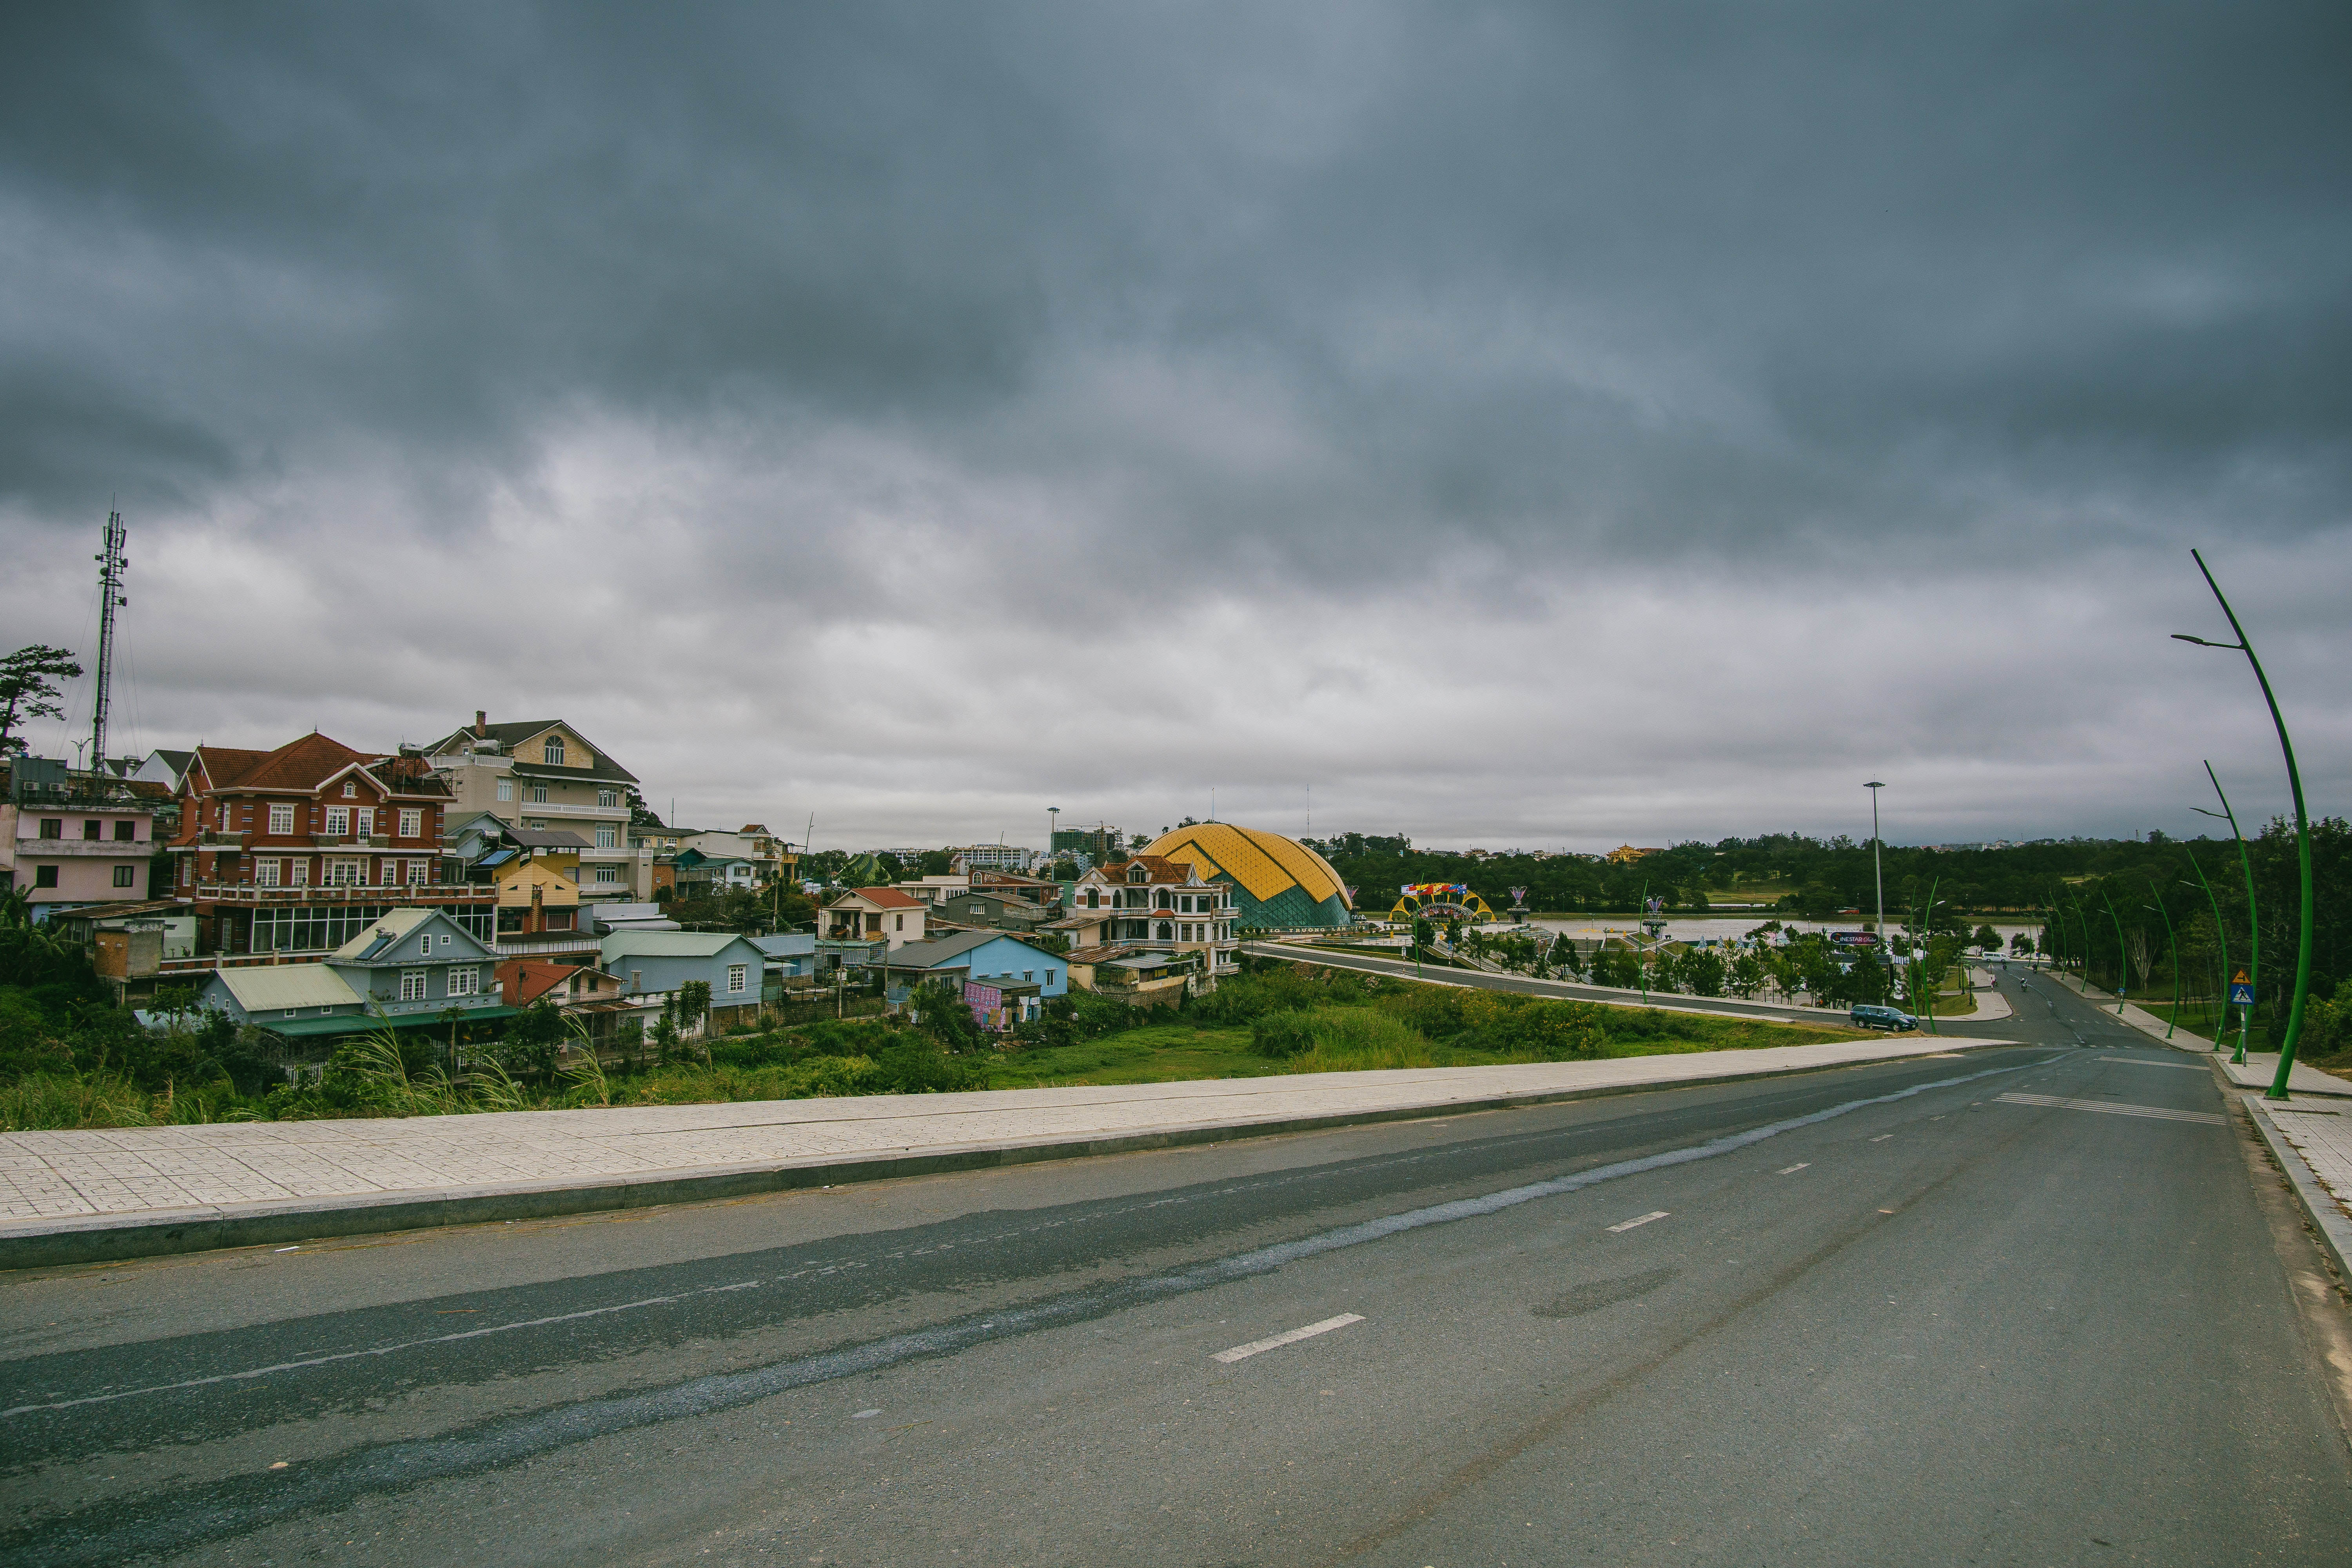 Village Beside Road Under Cloudy Sky, Roadway, Vehicle, Urban, Trees, HQ Photo